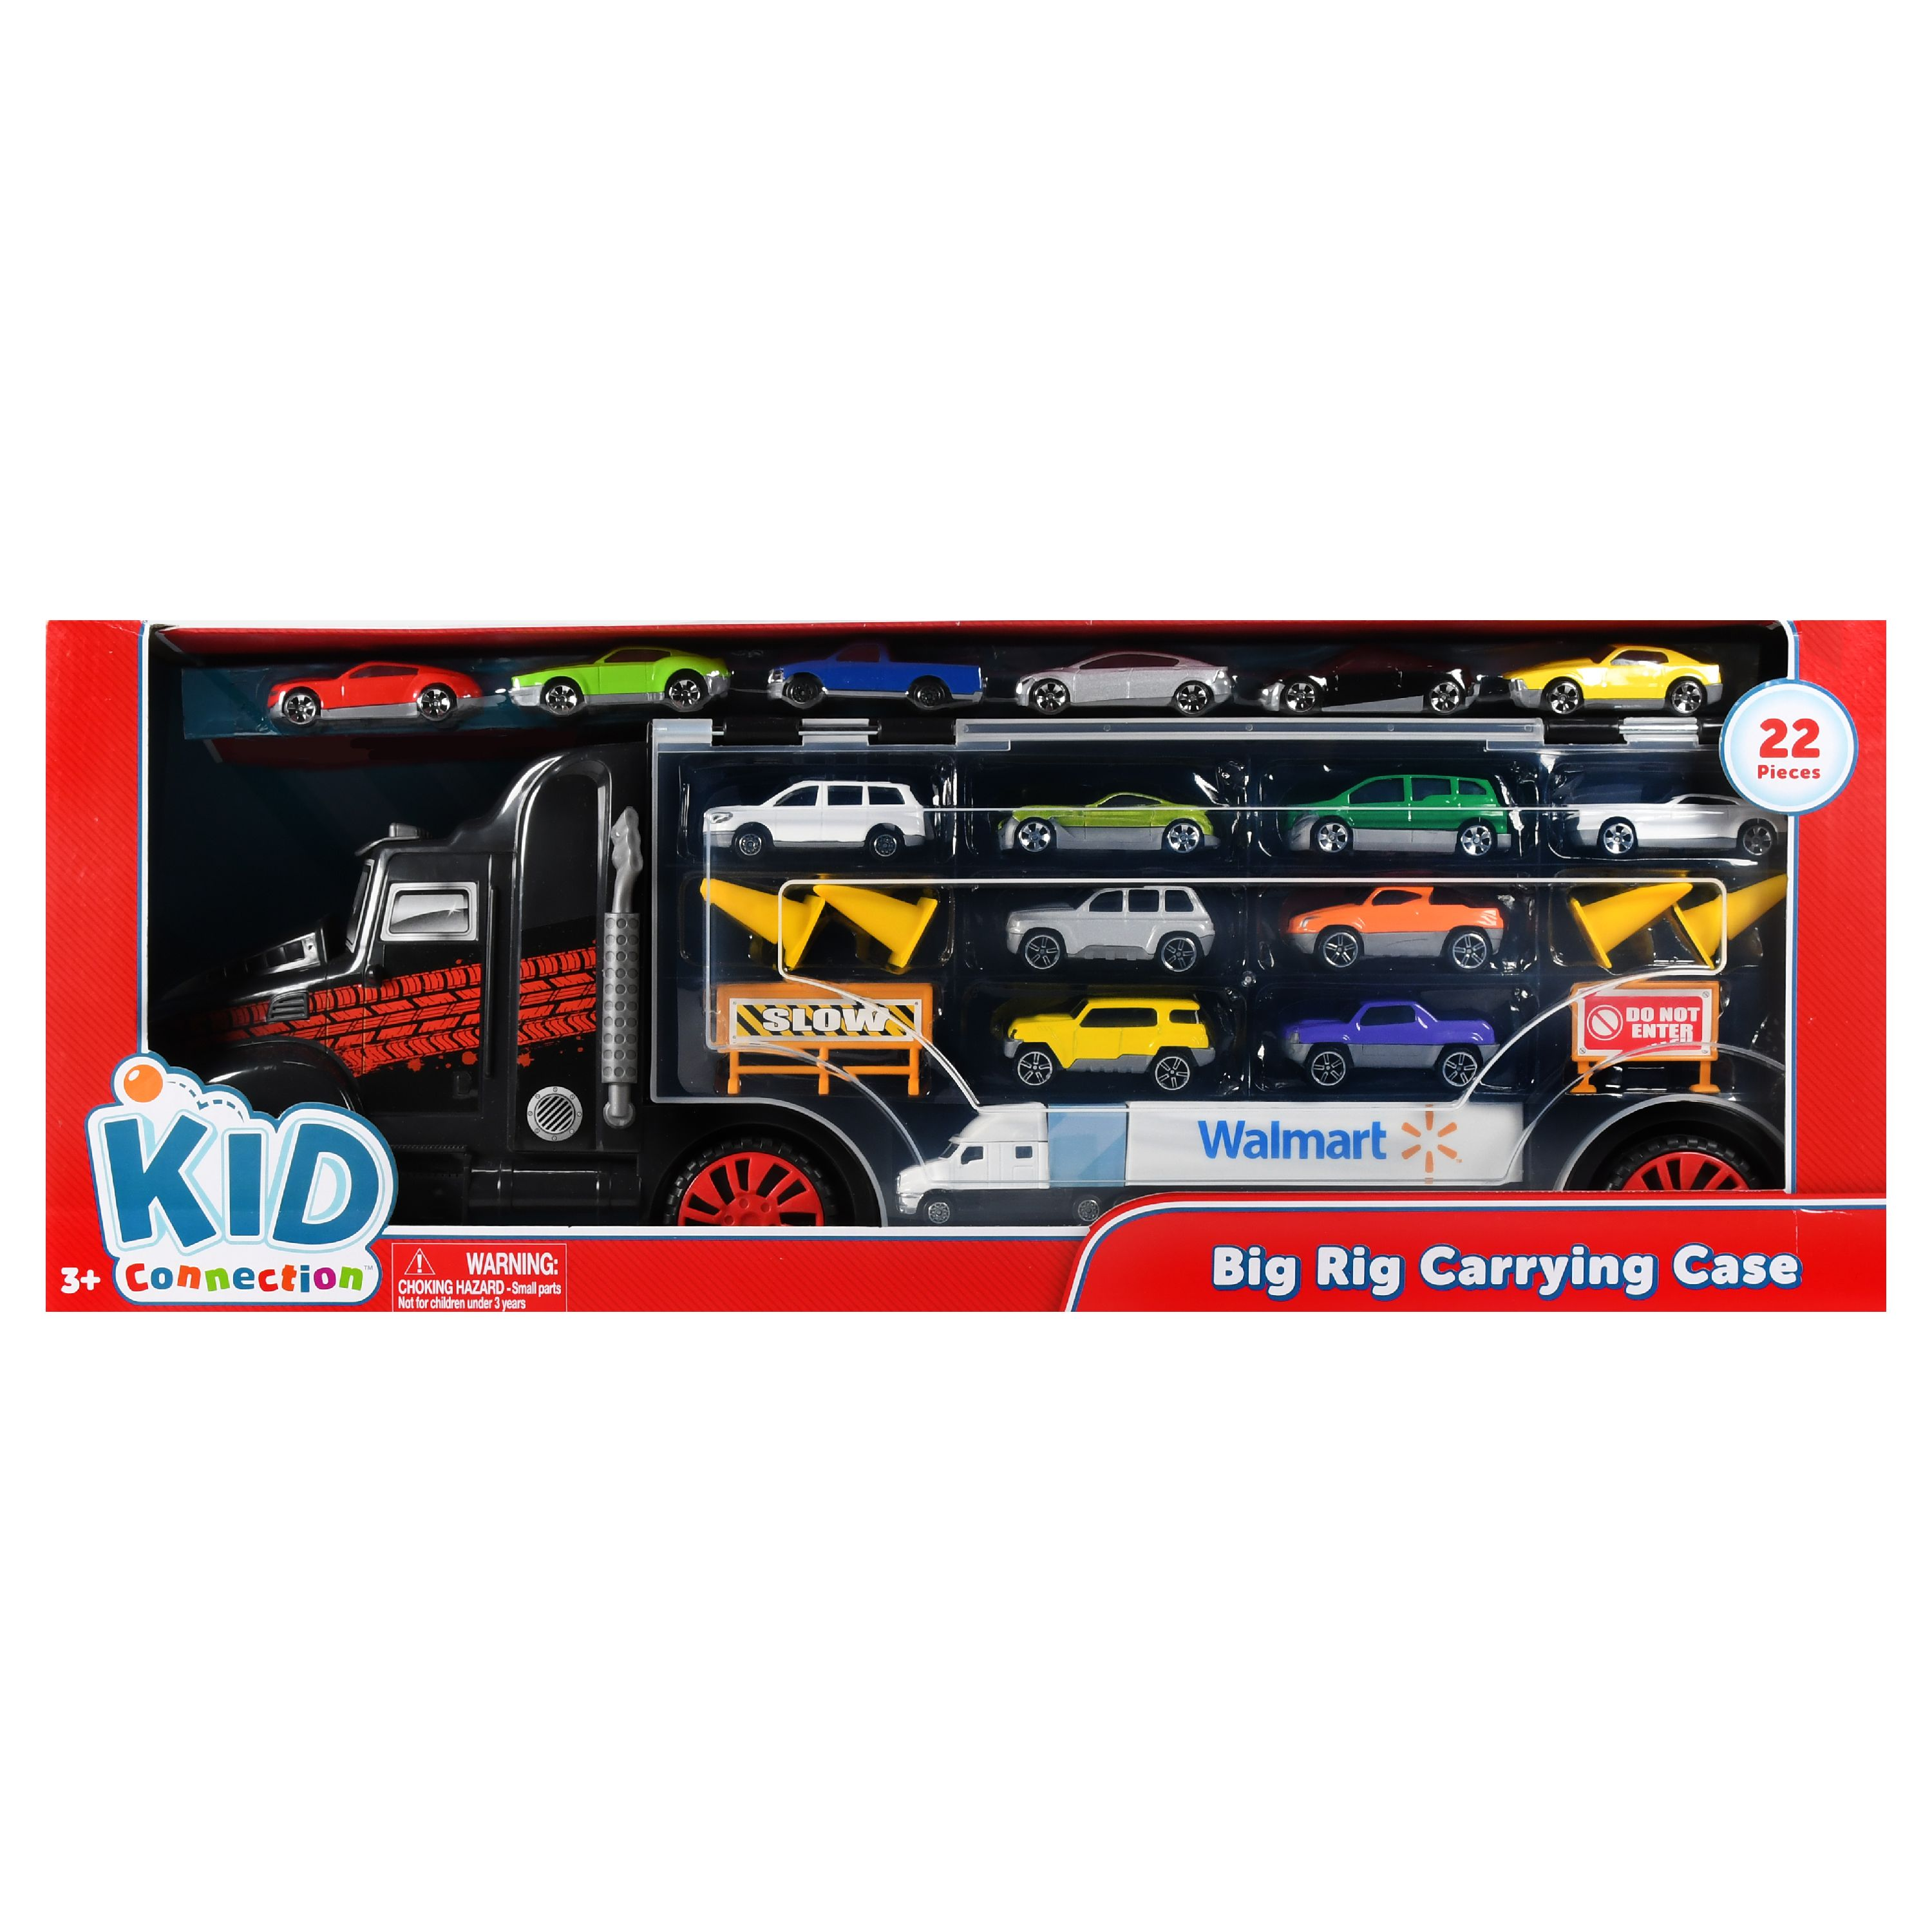 Kid Connection 24-Piece Big Rig Carrying Case with Toy Cars